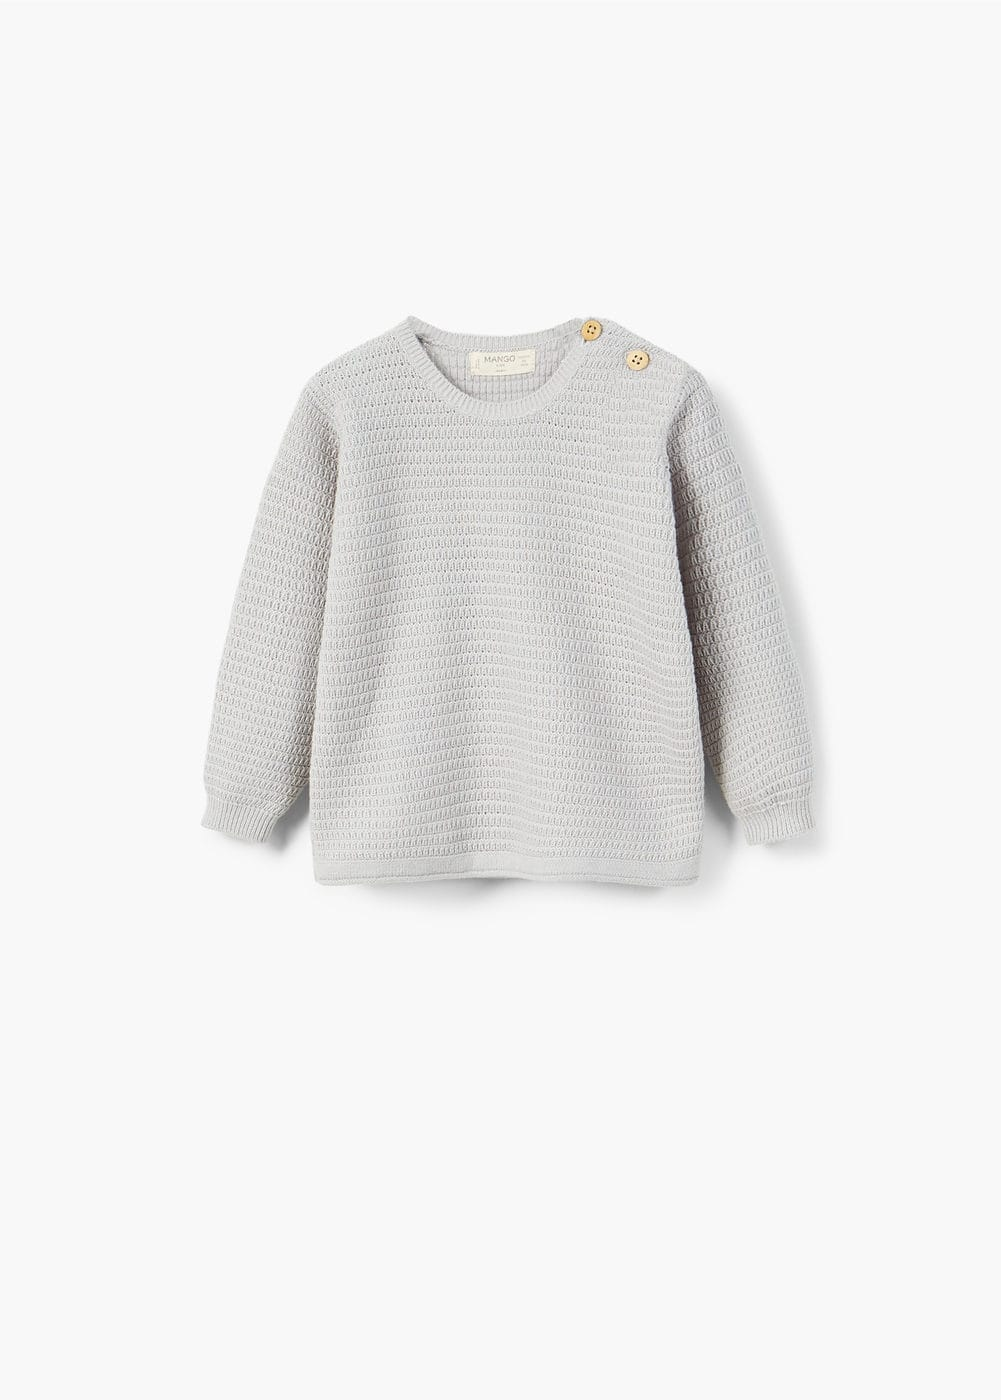 Elbow-patch cotton sweater | MANGO KIDS